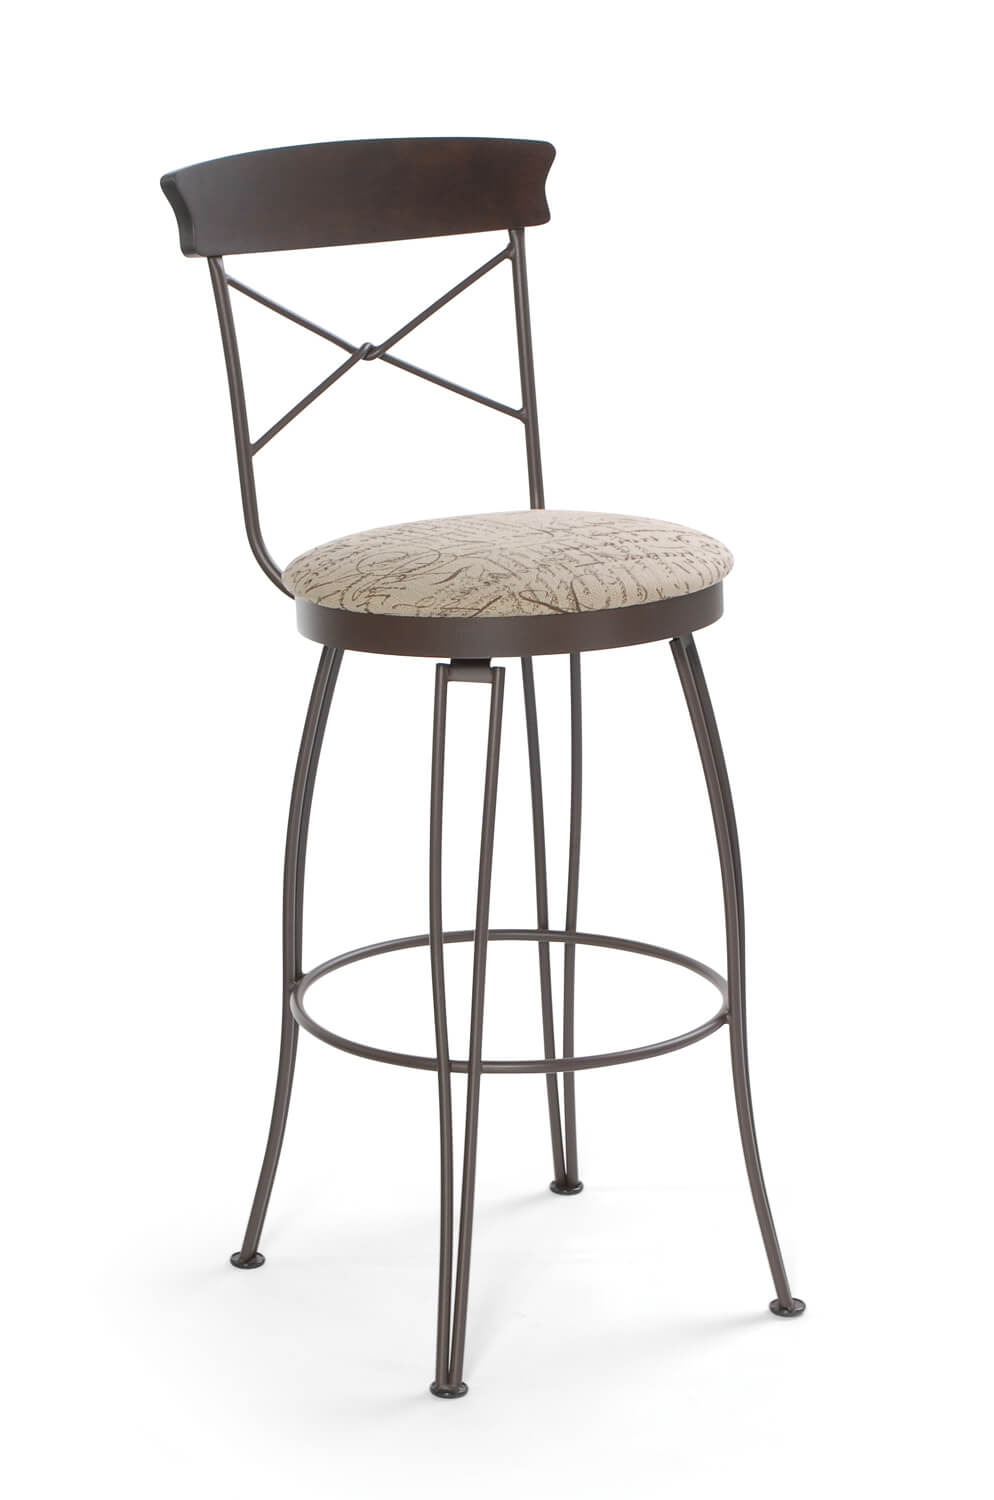 Trica S Laura Swivel Counter Or Bar Stool W Cross Back